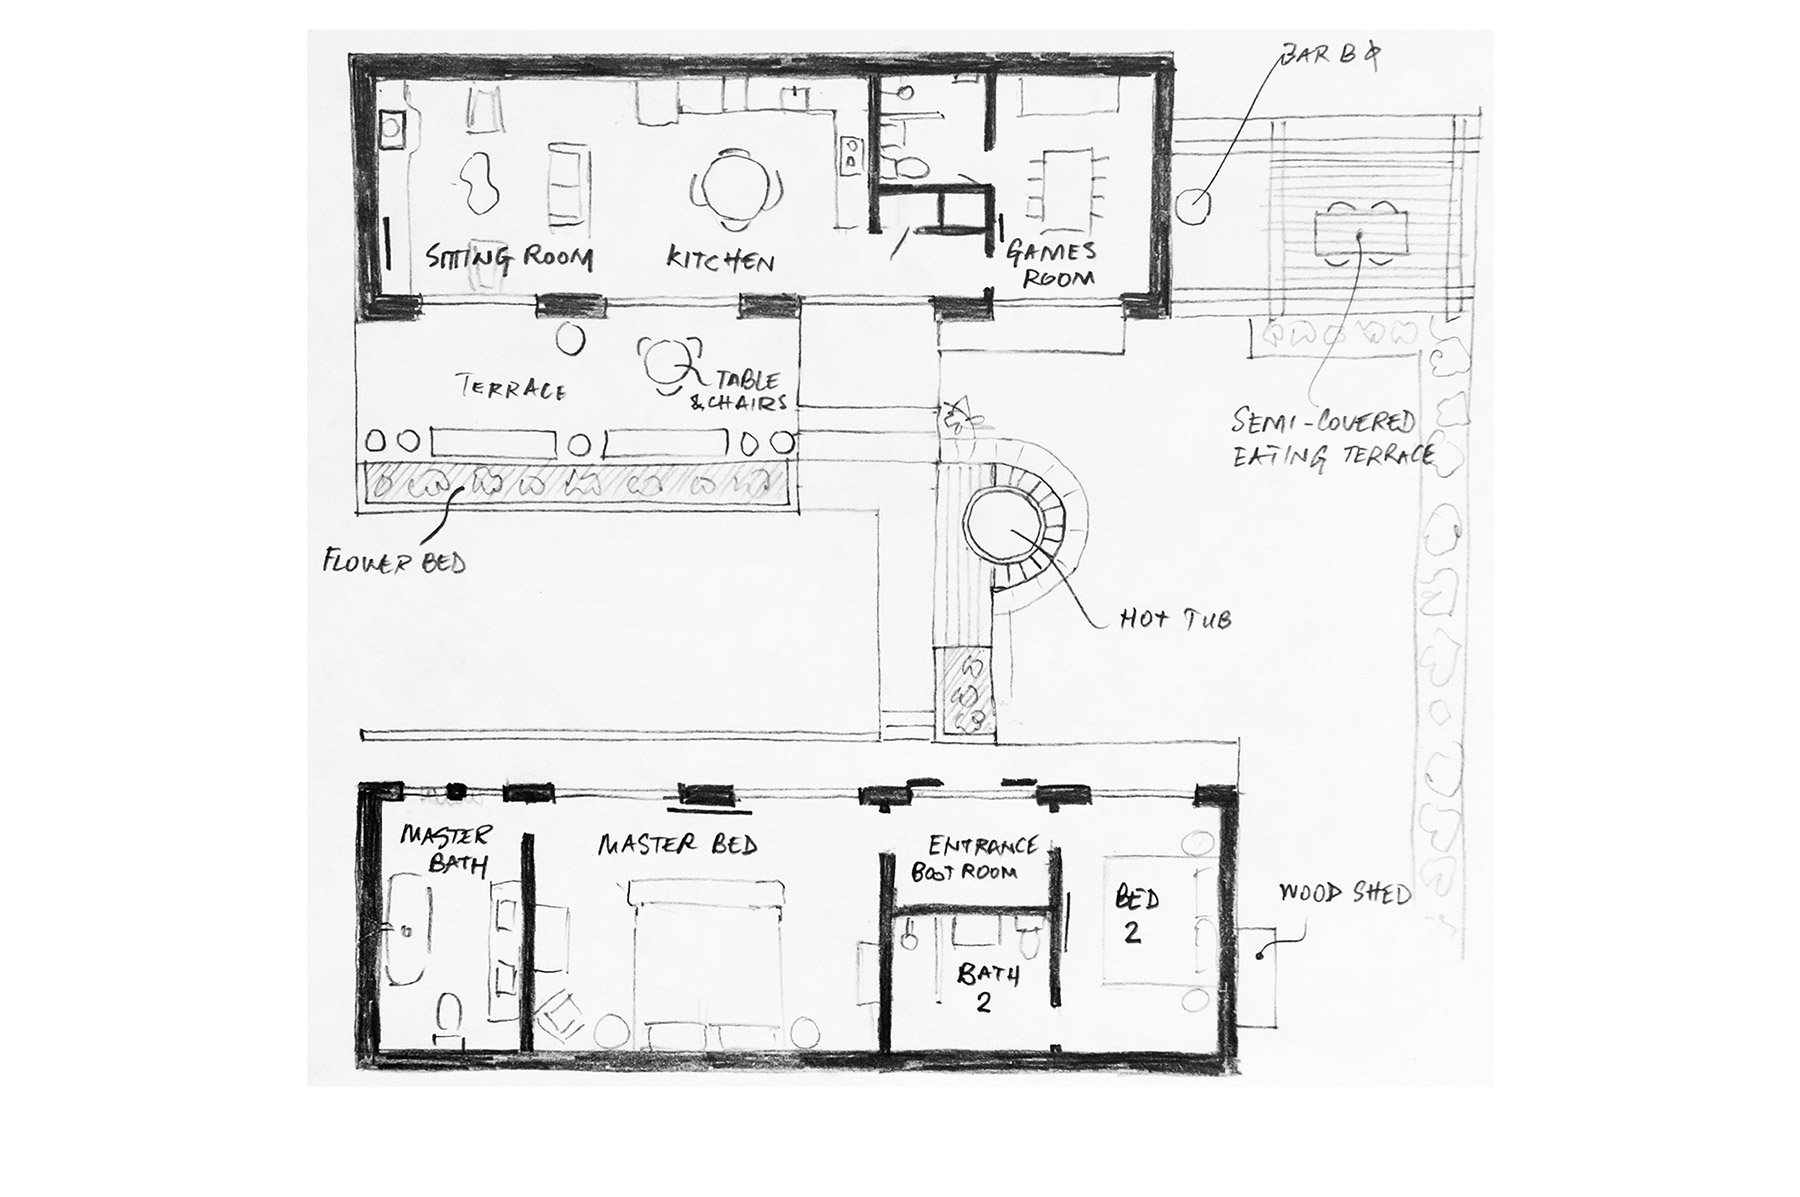 View the floorplan of Congrove Barns Bath